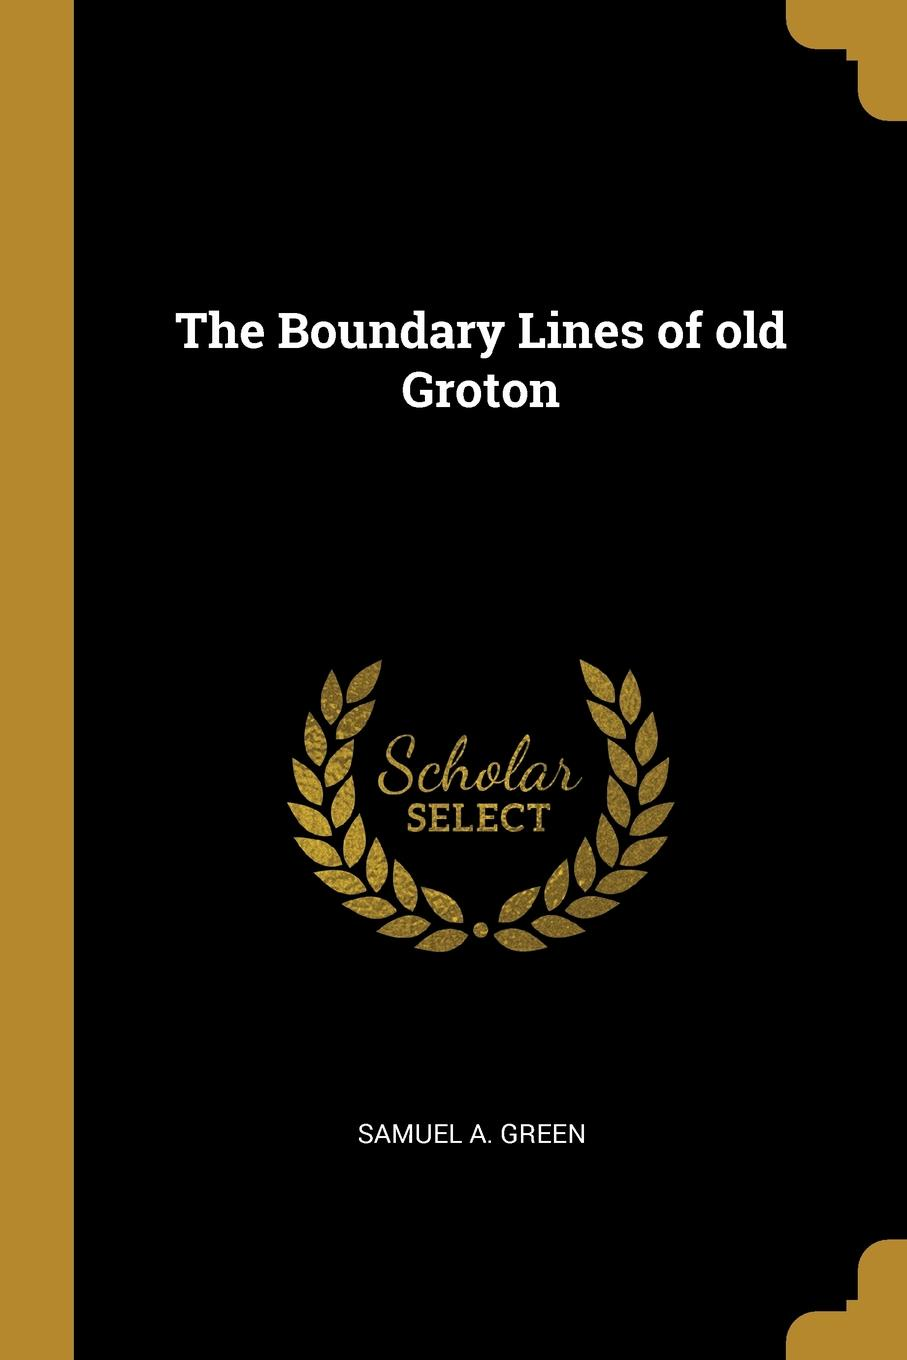 Samuel A. Green The Boundary Lines of old Groton